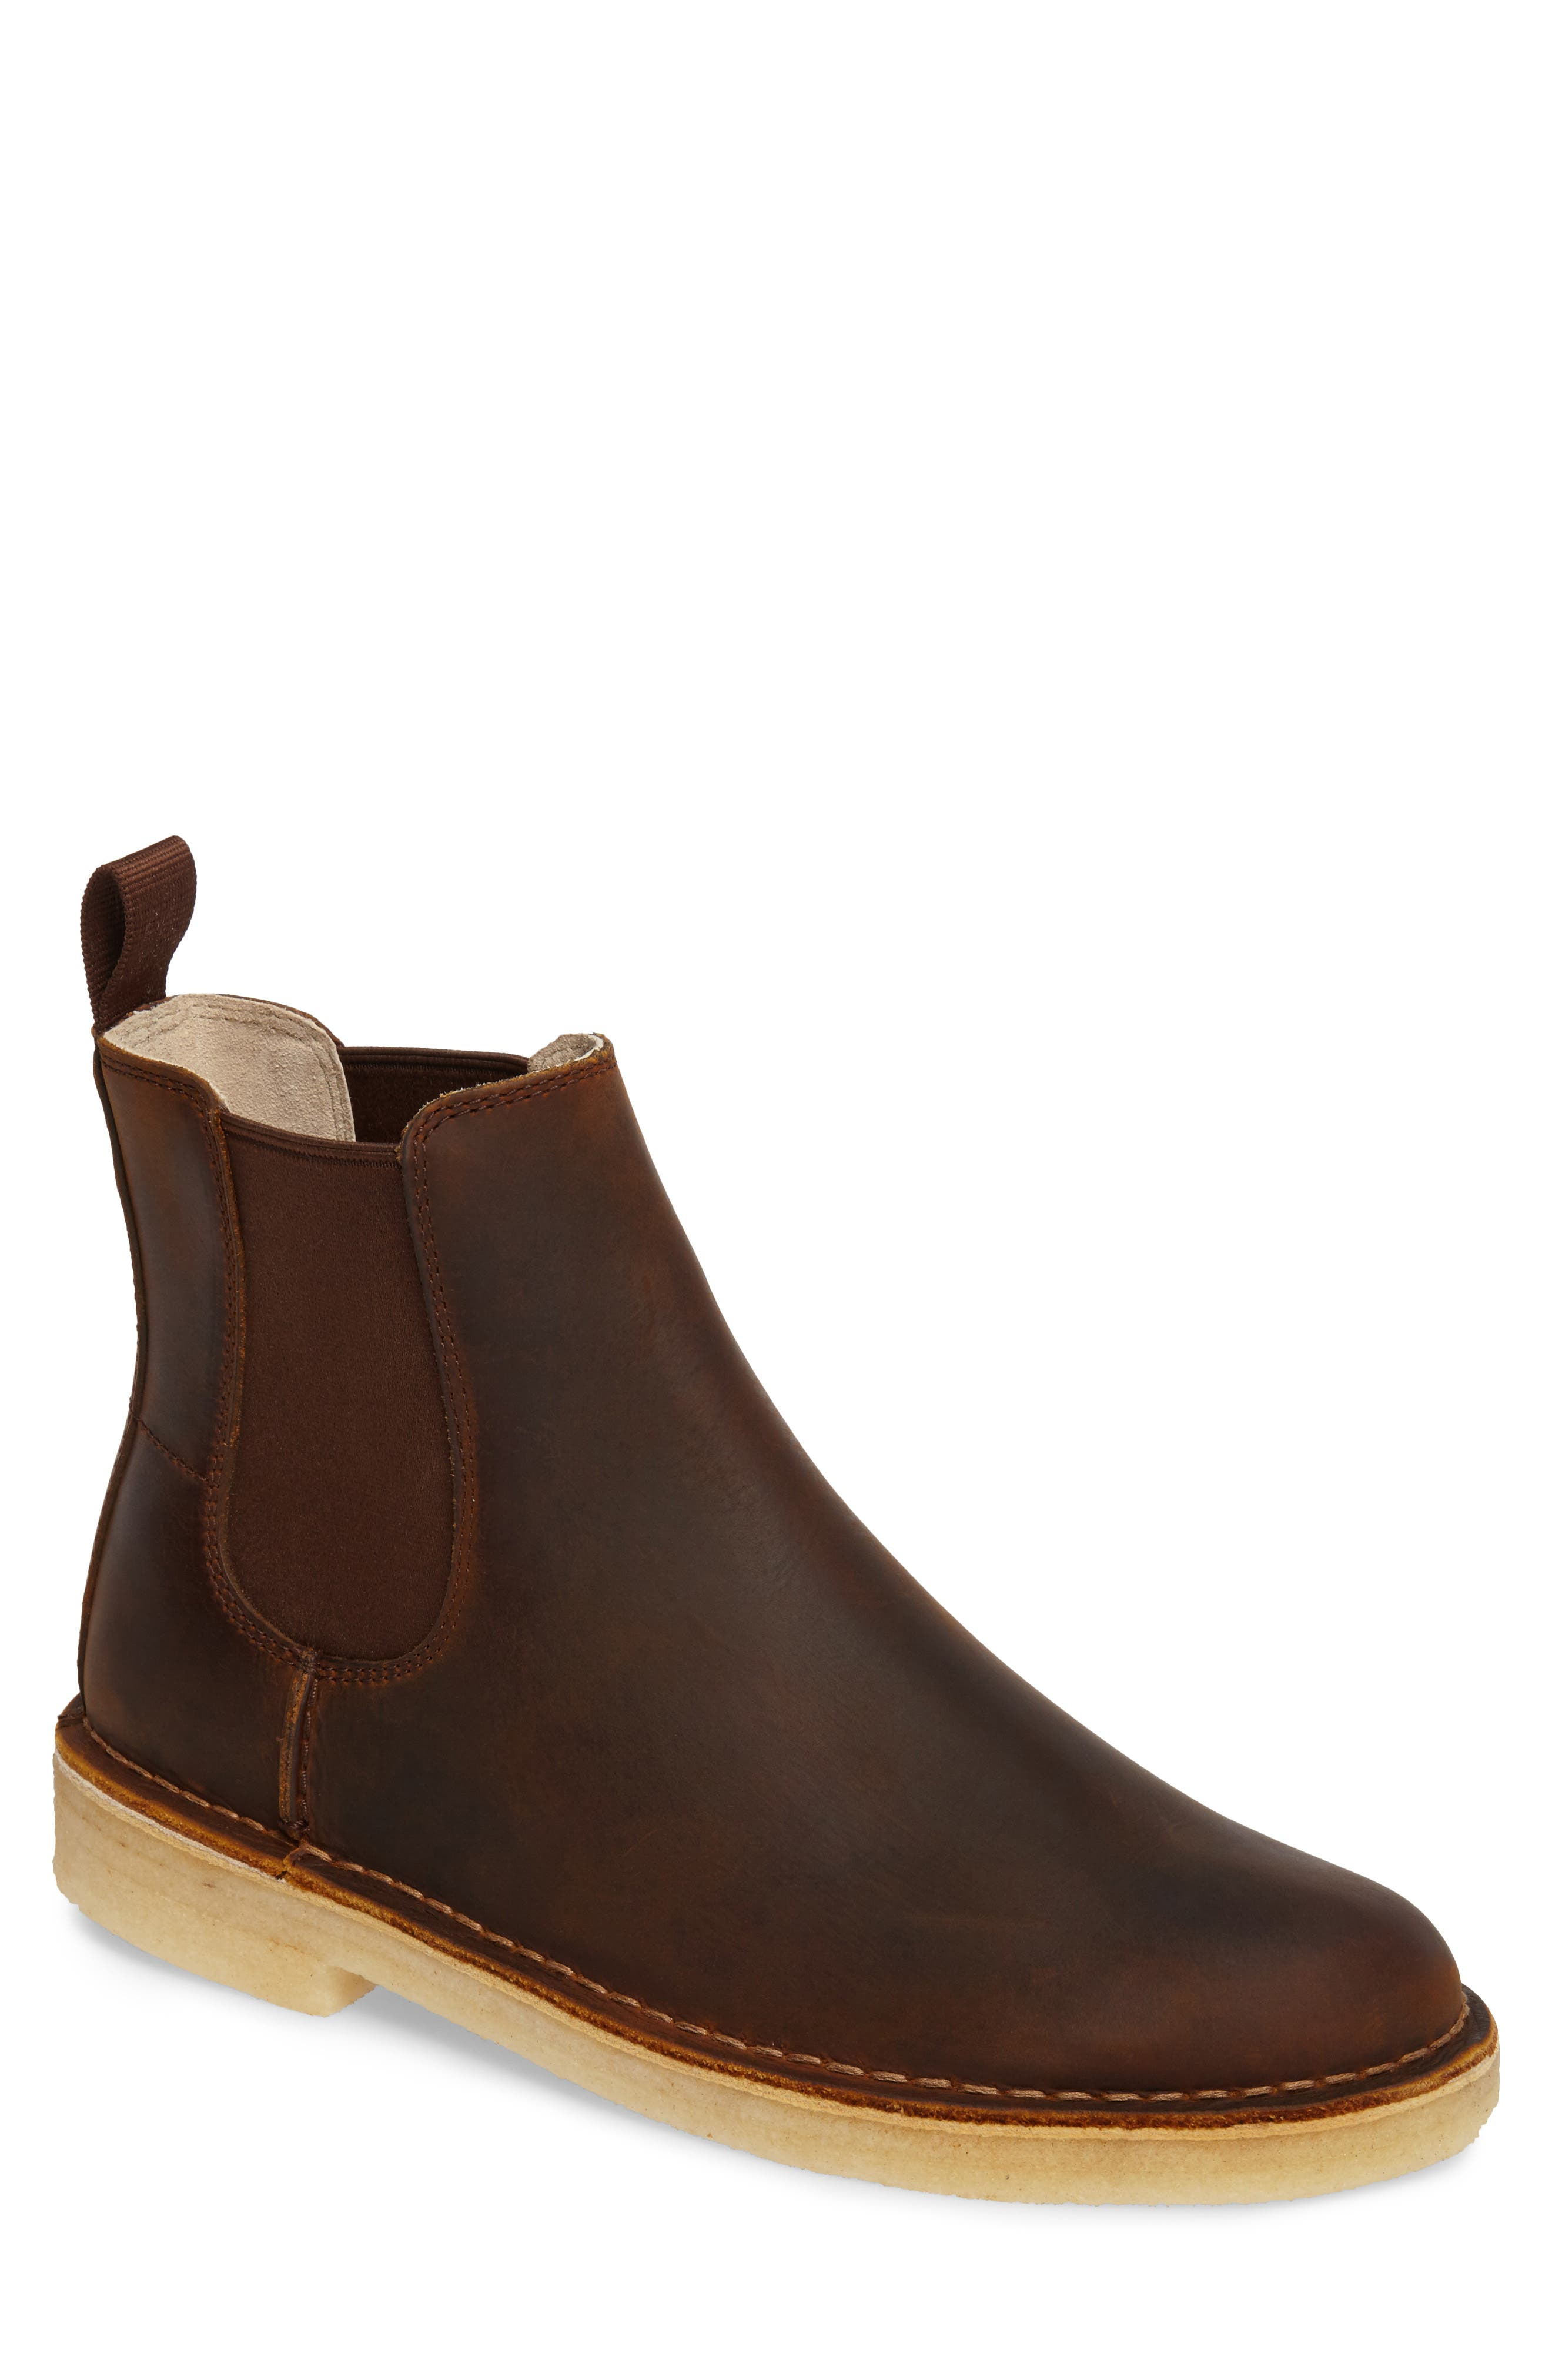 CLARKS<SUP>®</SUP>,                             Desert Peak Chelsea Boot,                             Main thumbnail 1, color,                             MEDIUM BROWN BEESWAX LEATHER